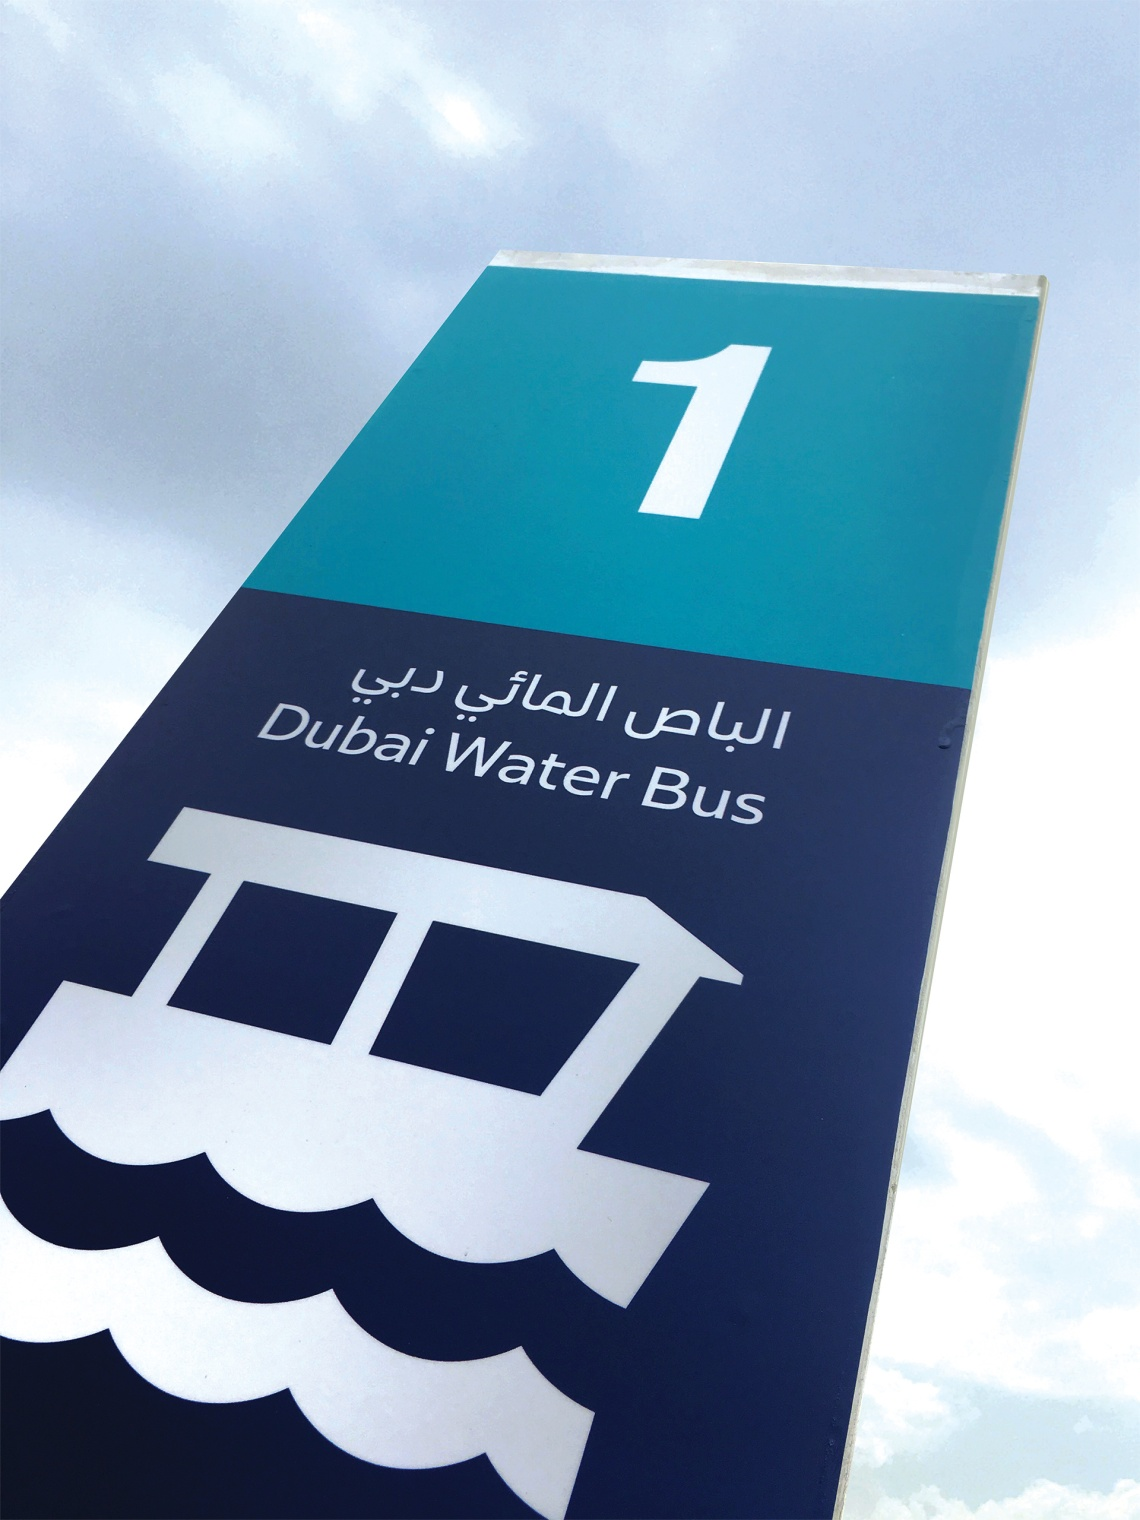 dubai_water_bus_01